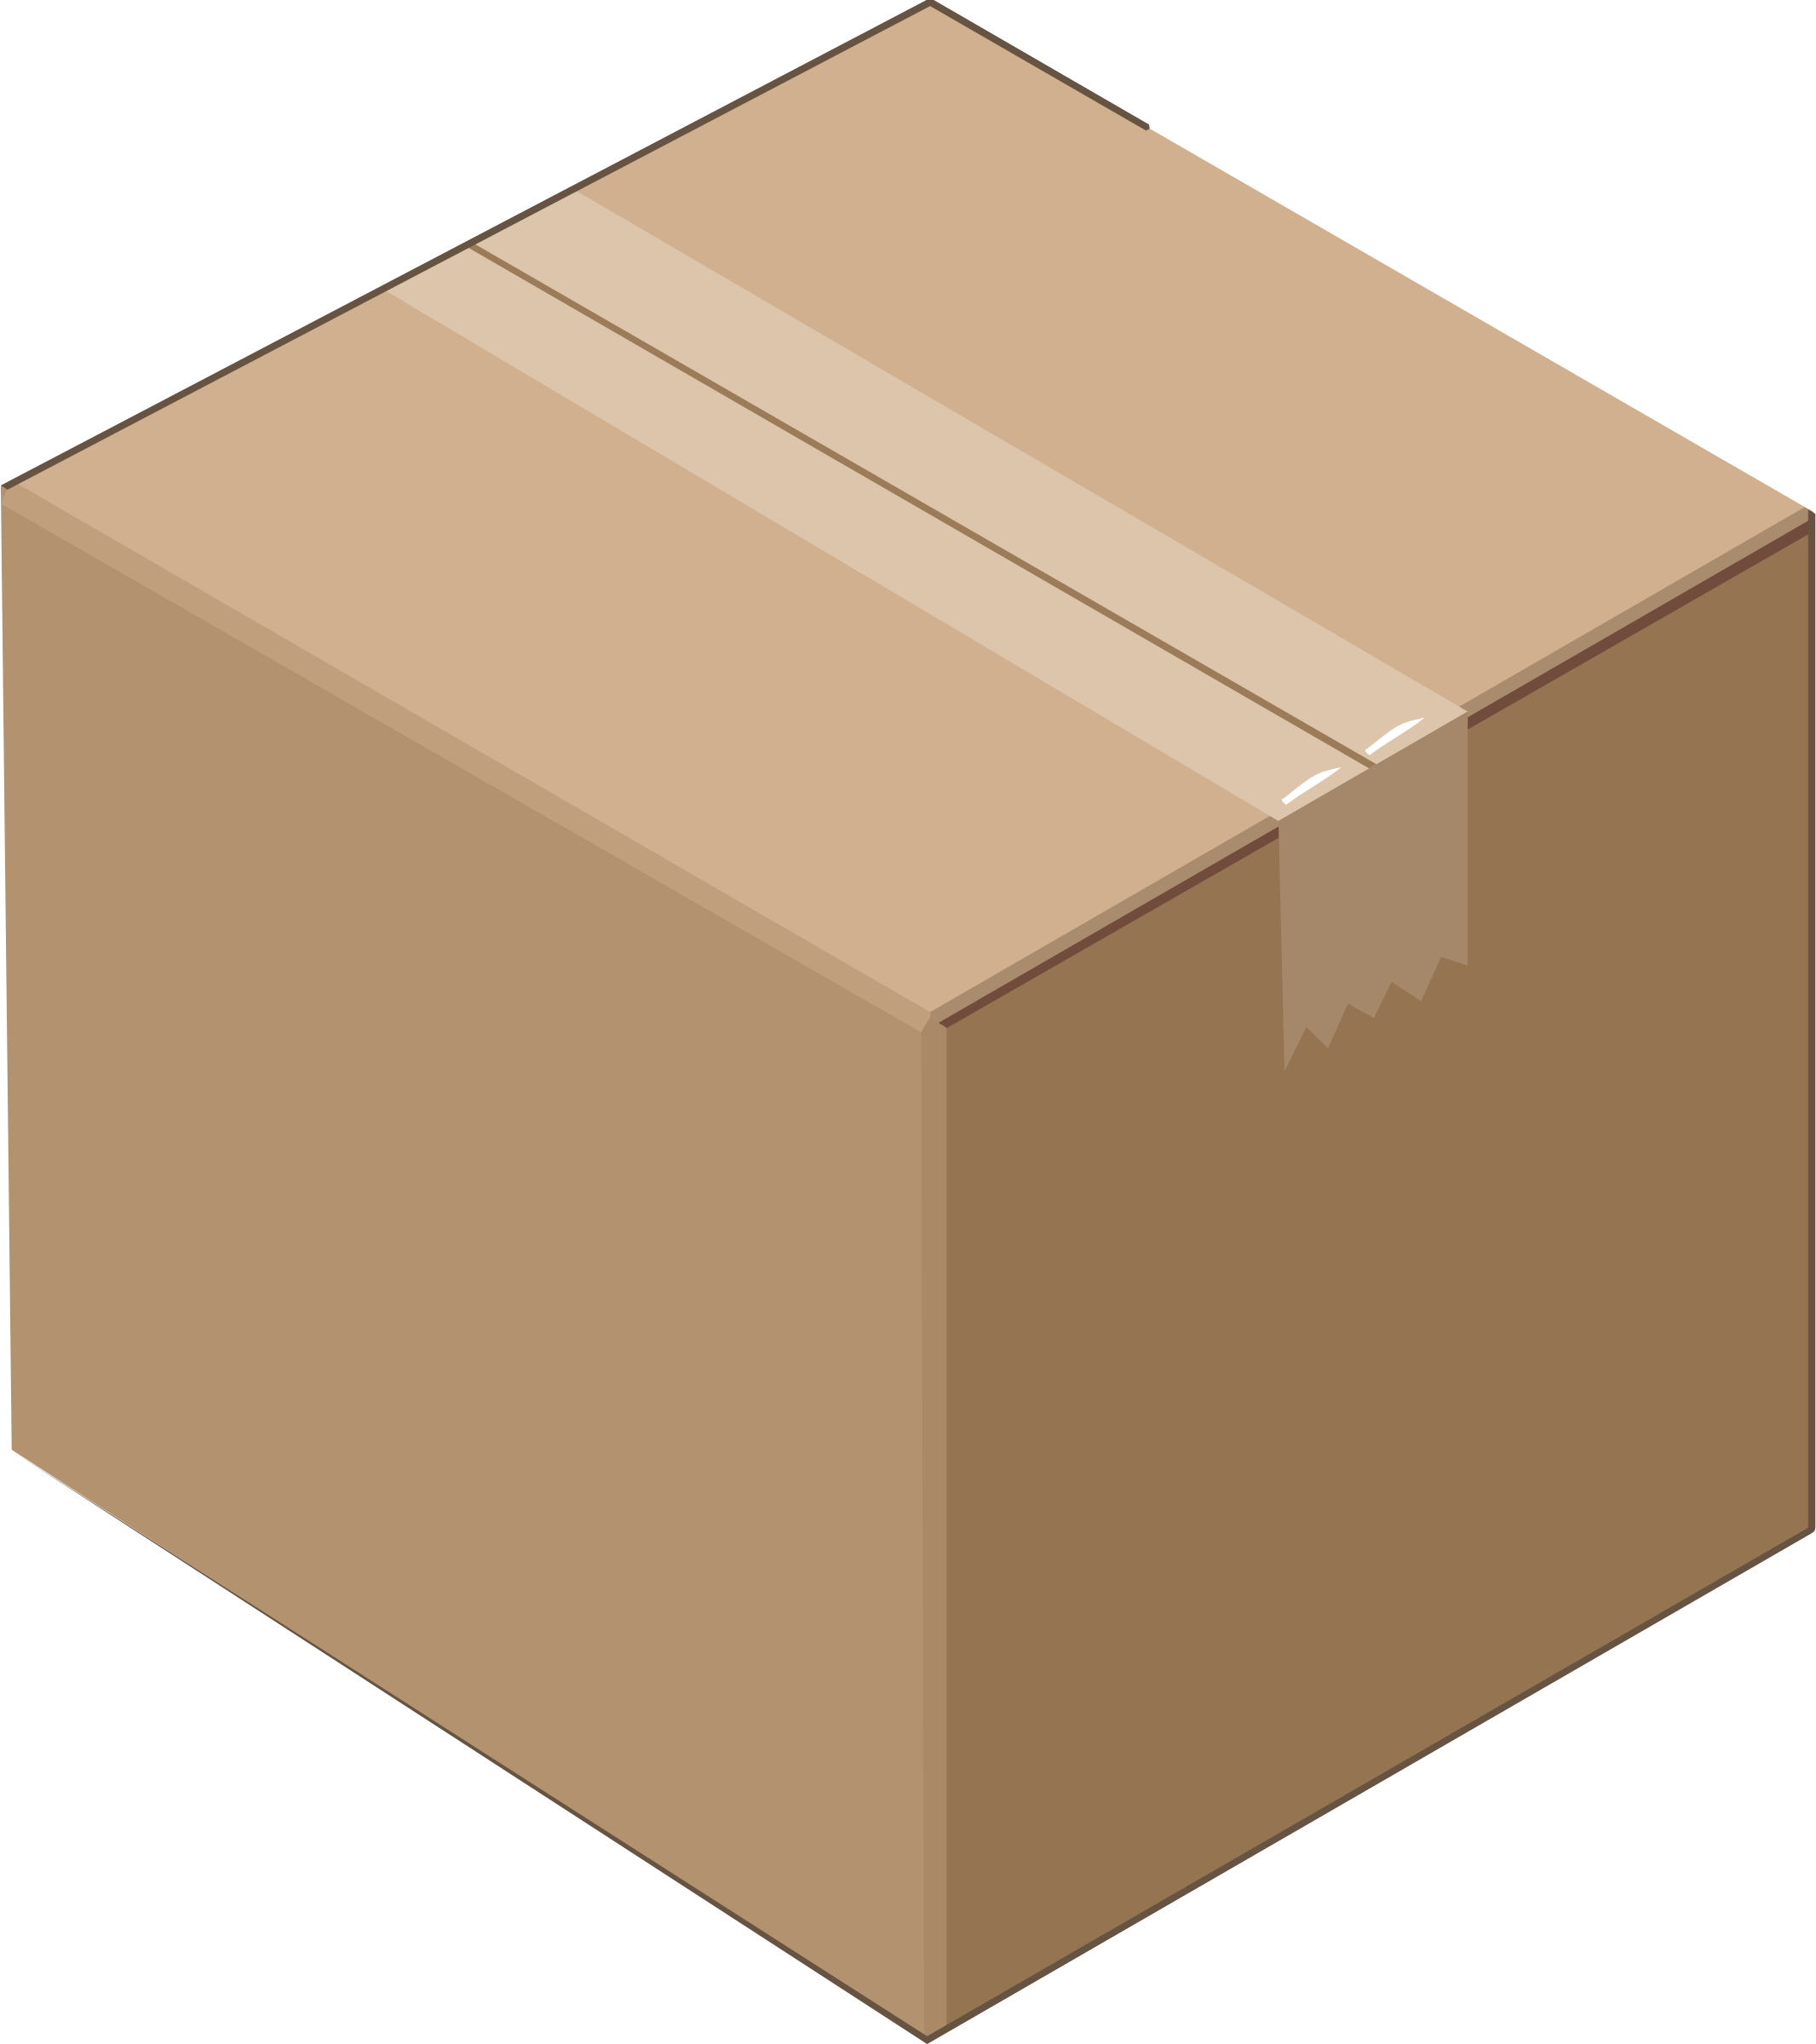 Cardboard box clipart transparent.